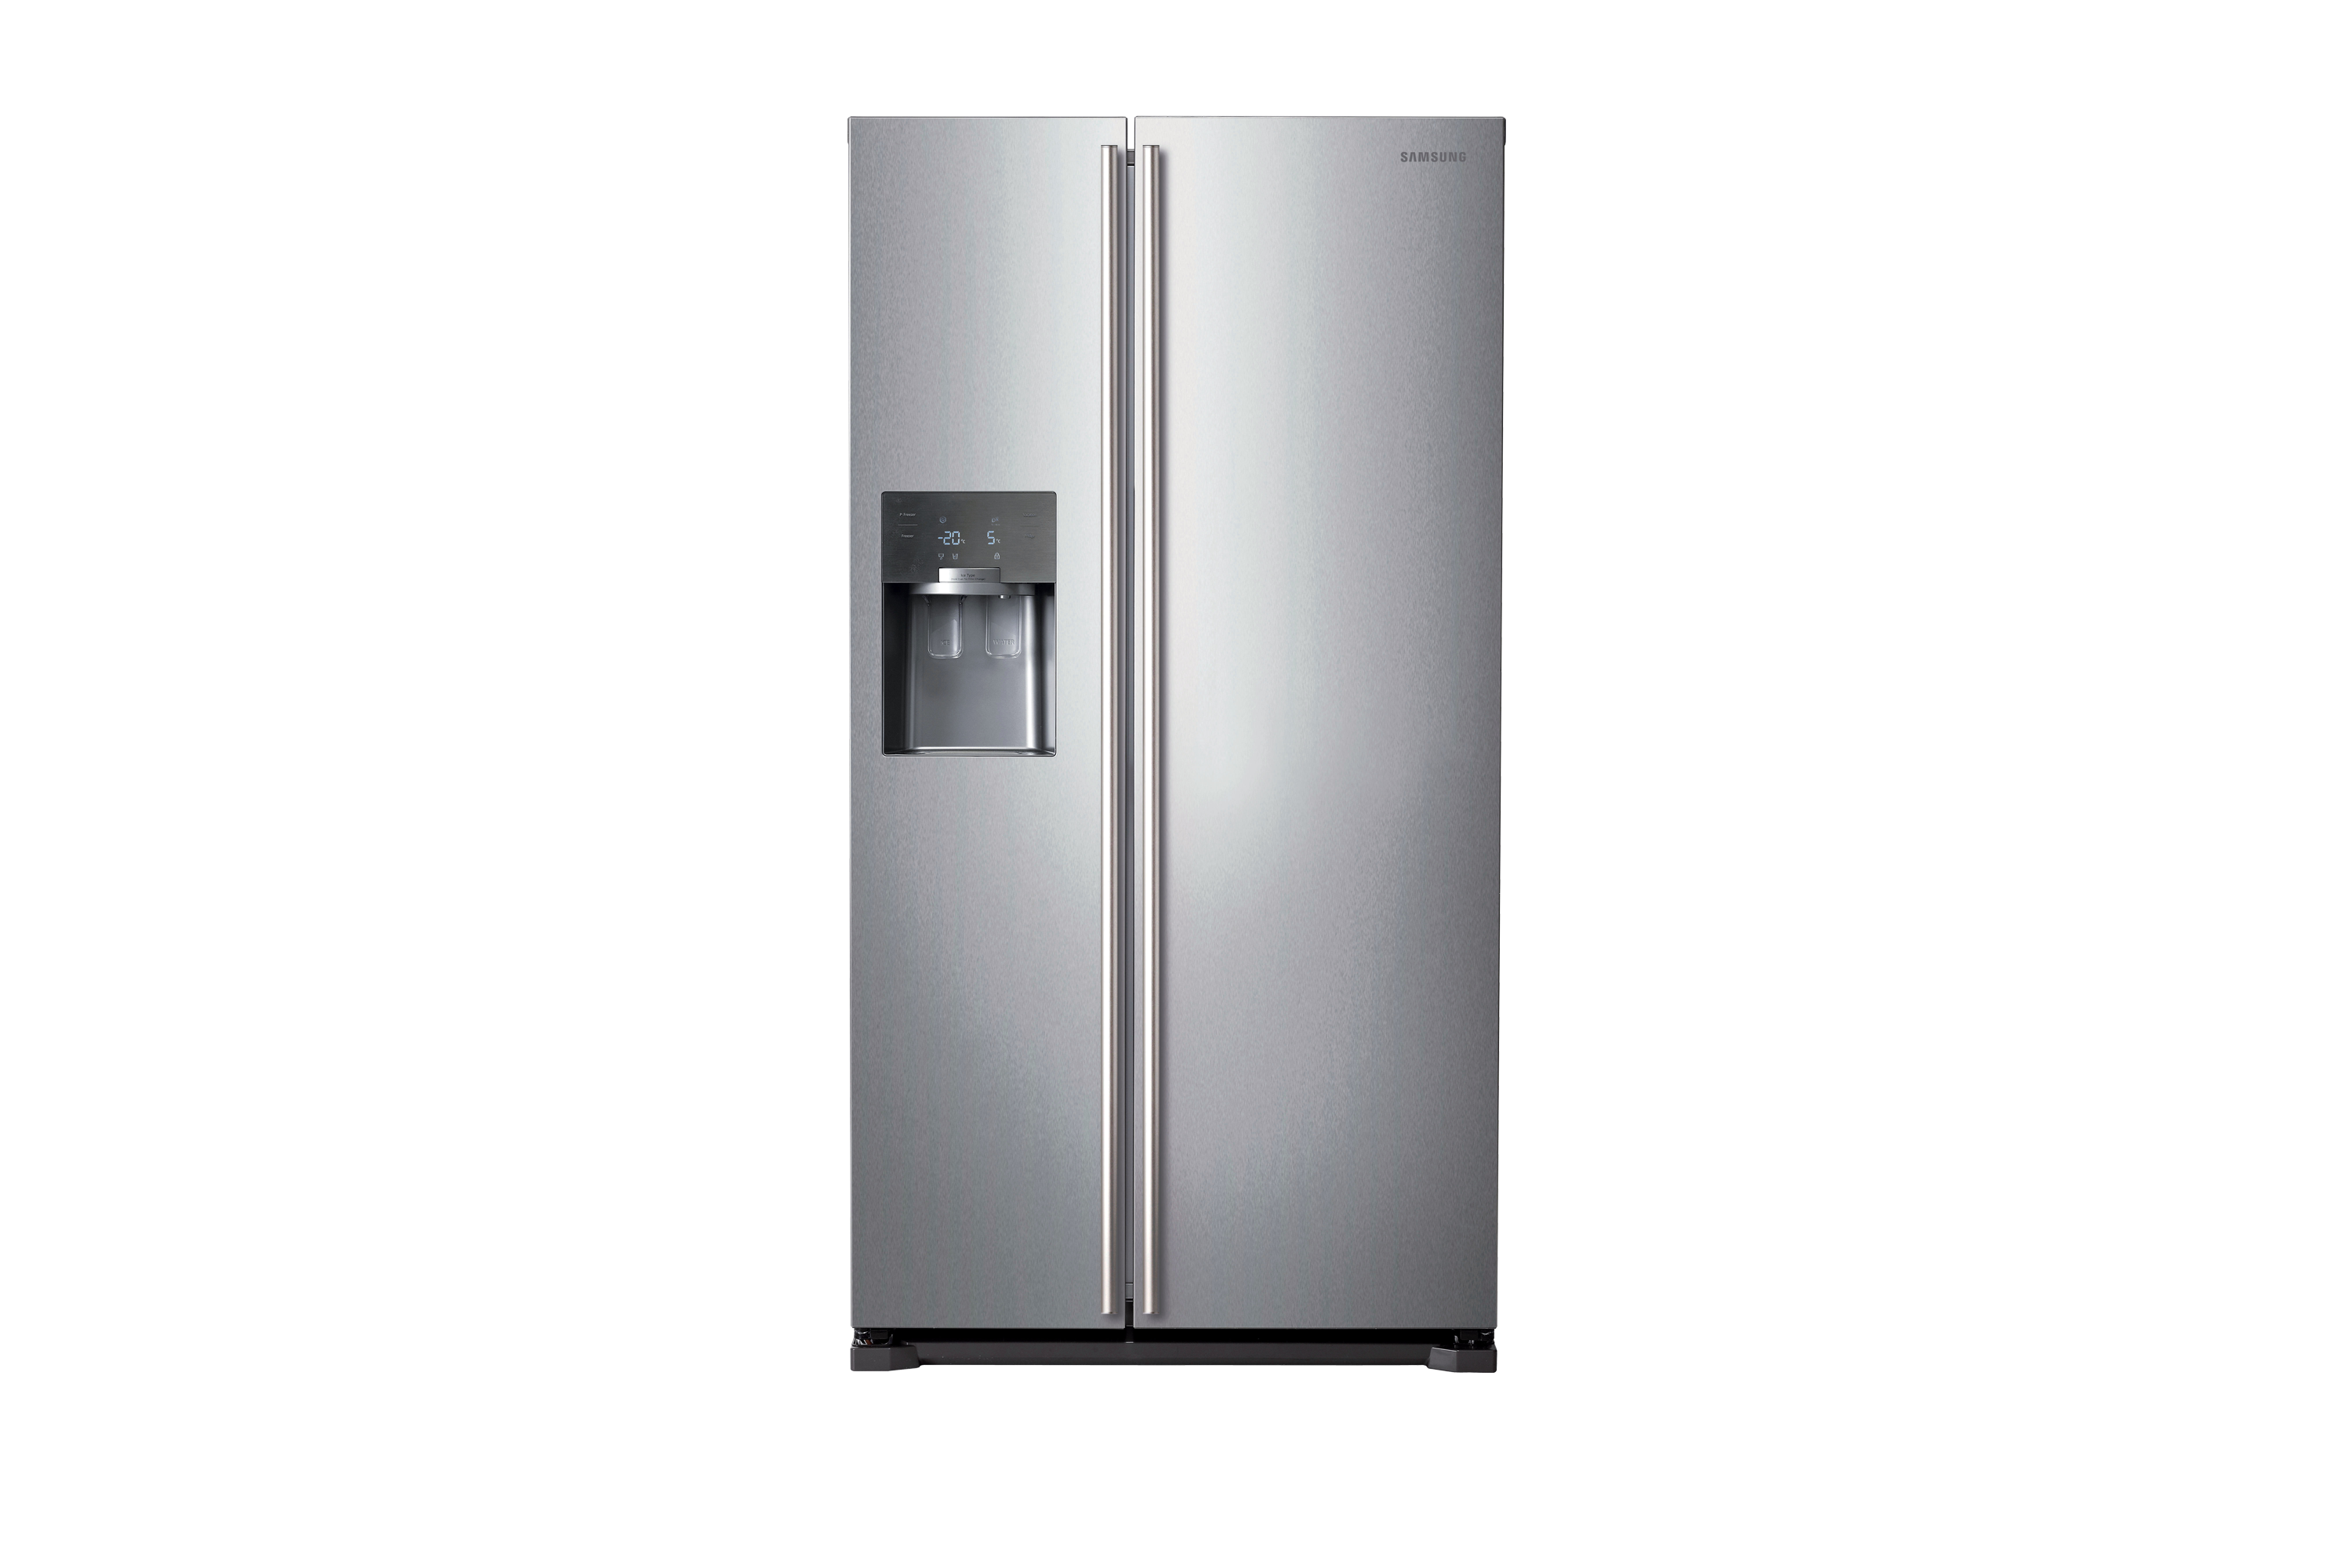 RS7567BHCSP H-Series American Style Fridge Freezer